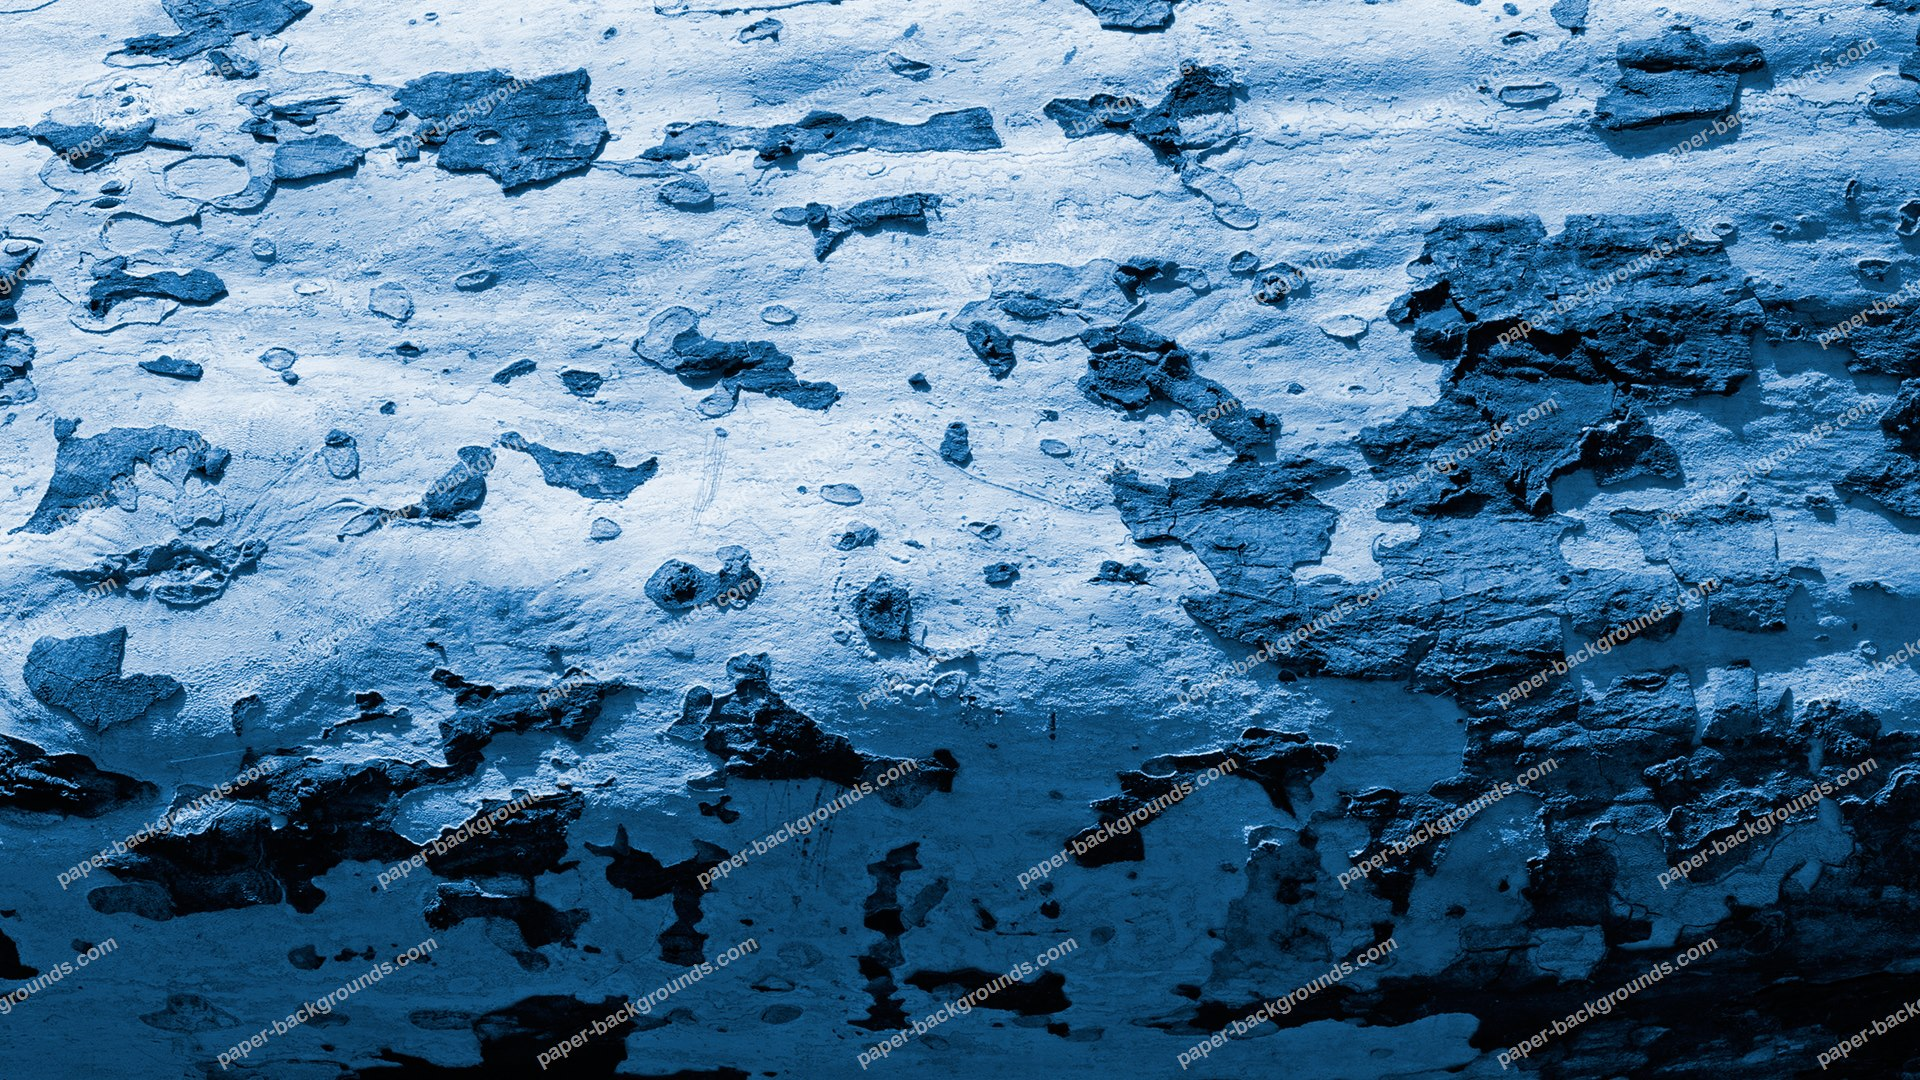 Blue Grunge Background HD 1920 x 1080p